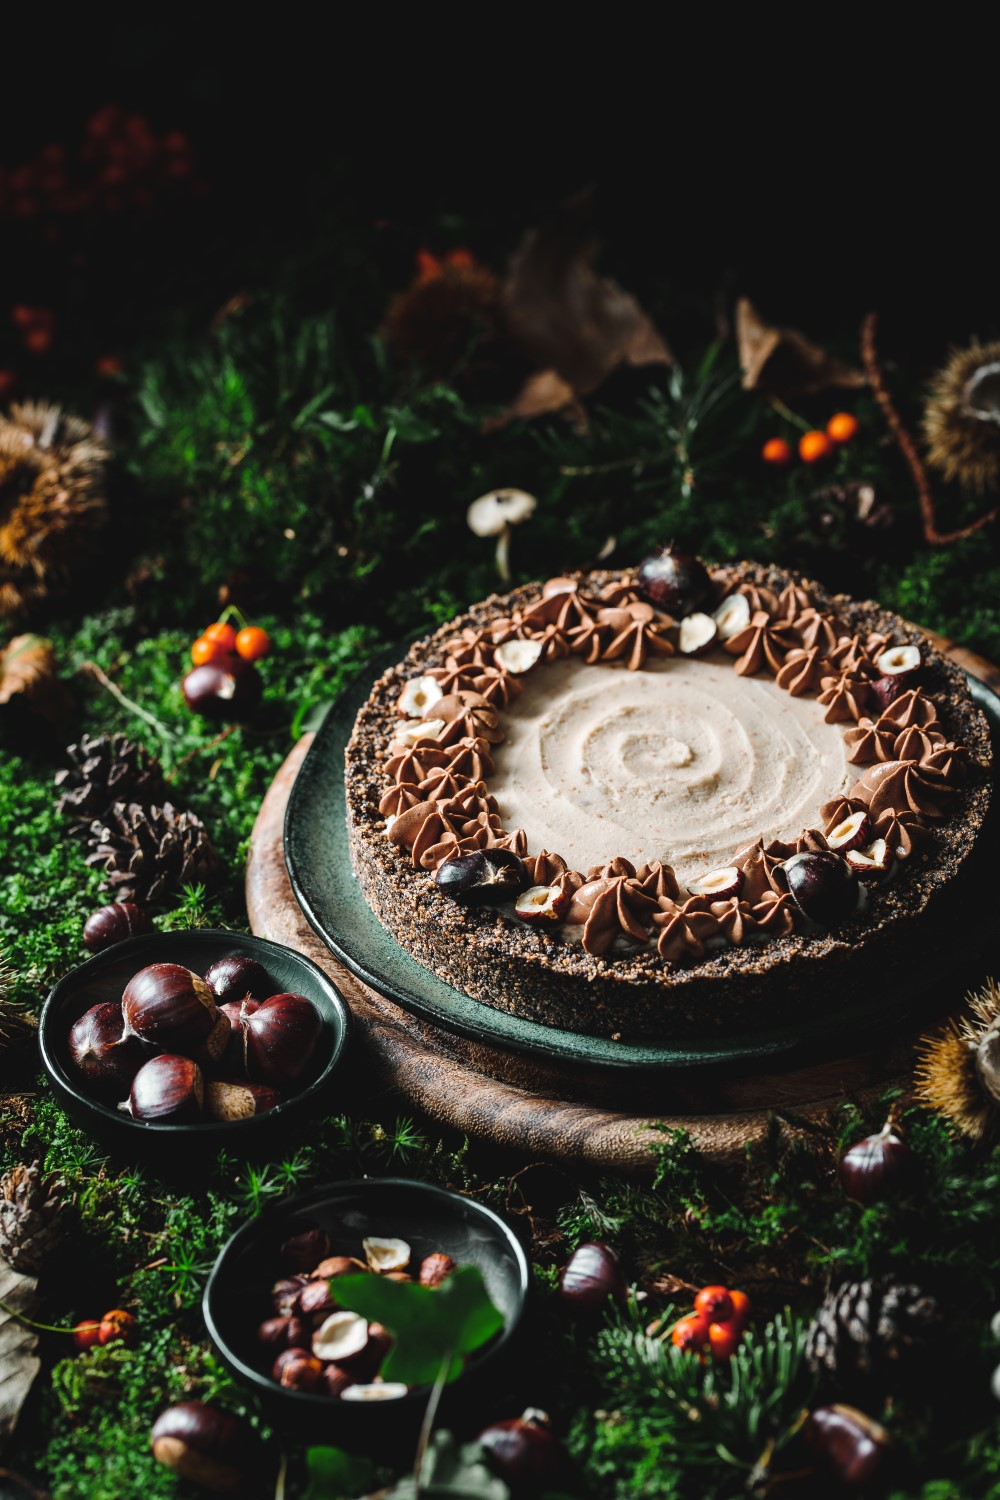 This no-bake chocolate chestnut pie is an indulgent autumn dessert that everyone likes. Surprise your guests with this recipe that is full of flavor.